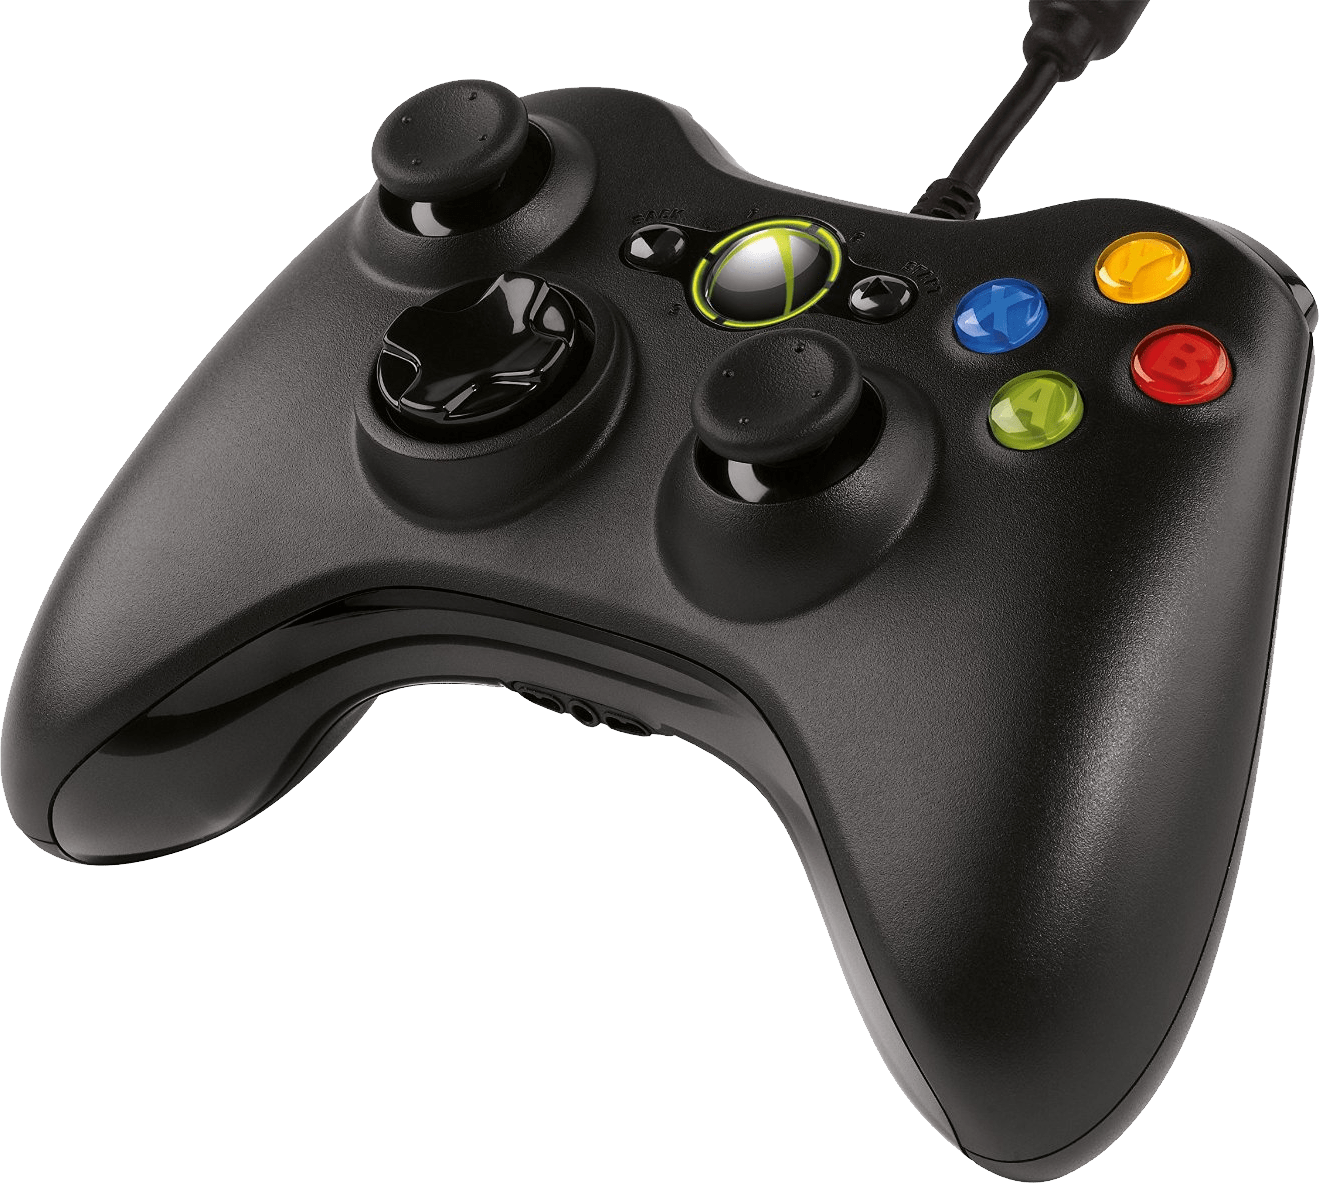 Xbox Controller Side View Transparent Png Stickpng